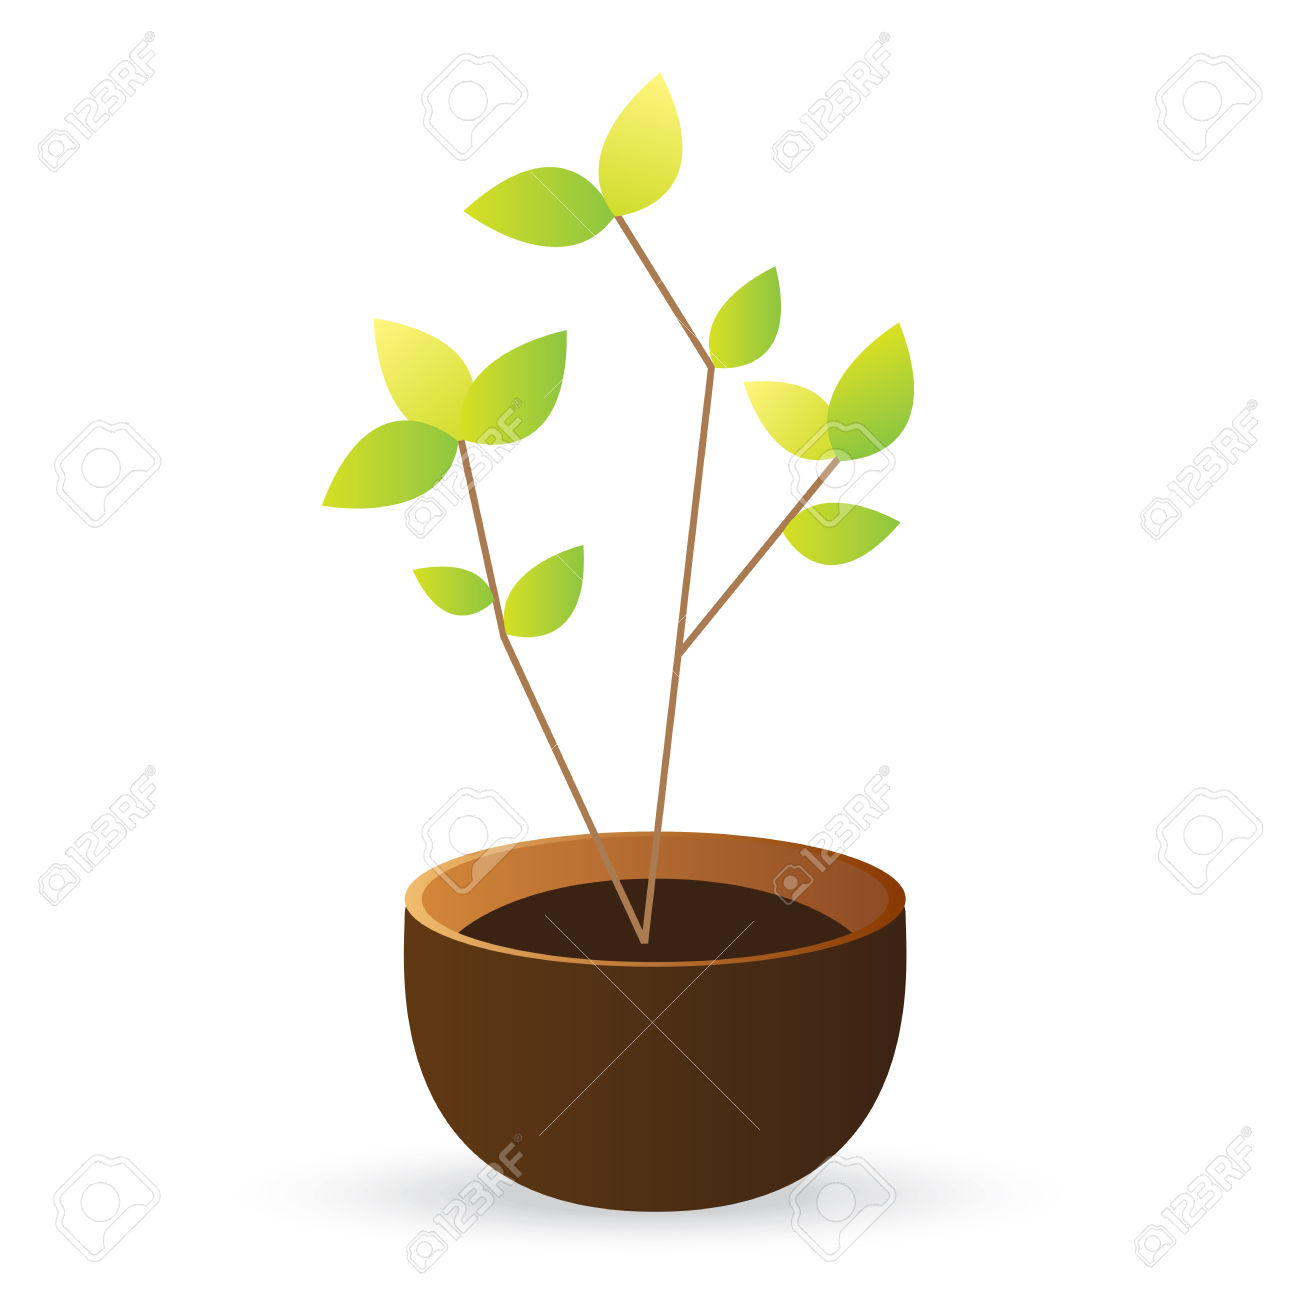 Grow Tree Green Leaves On White Background Royalty Free Cliparts.